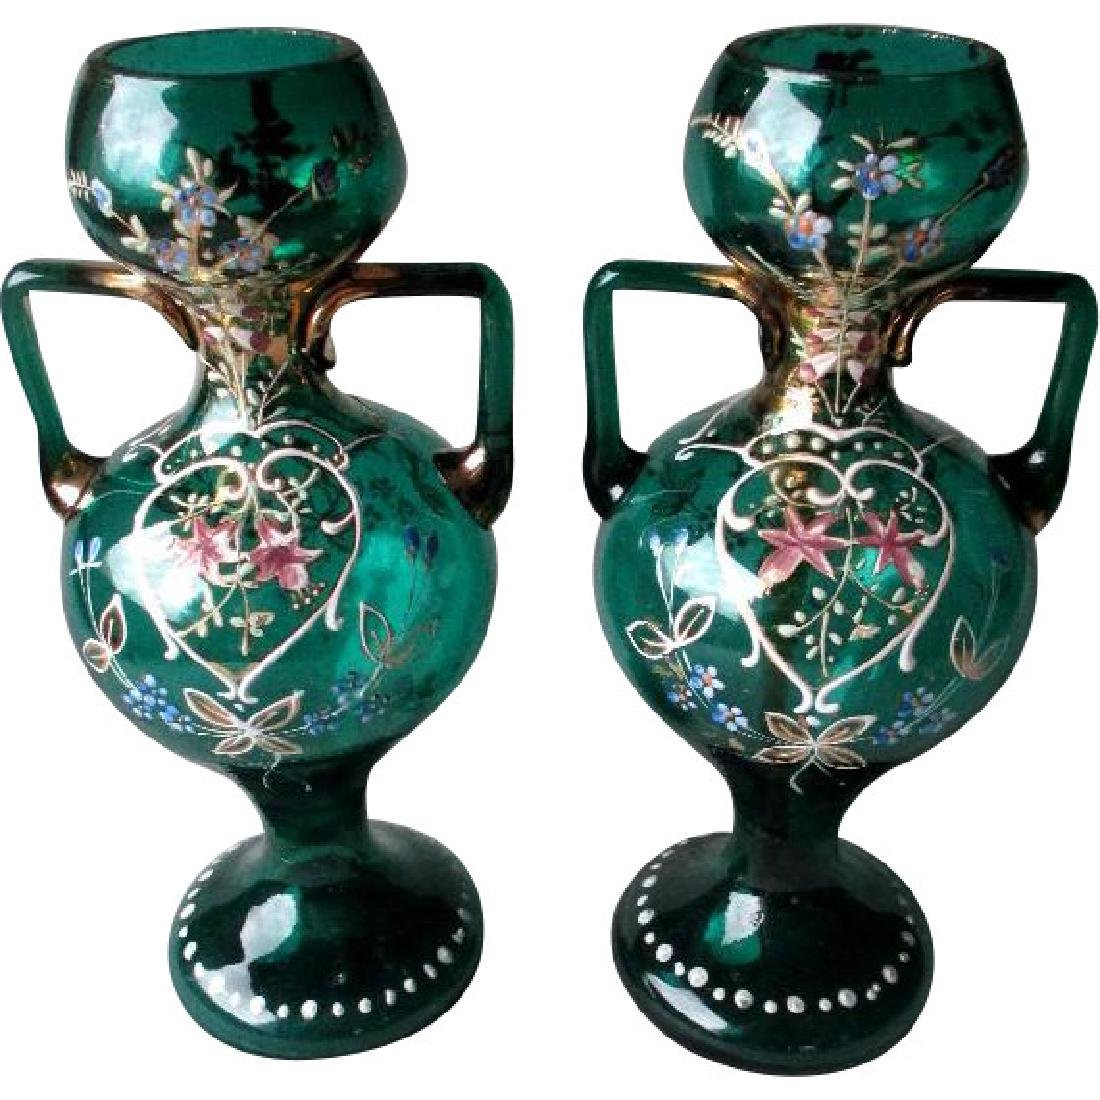 Matched Pair Stunning Bohemian Enamel Glass Vases